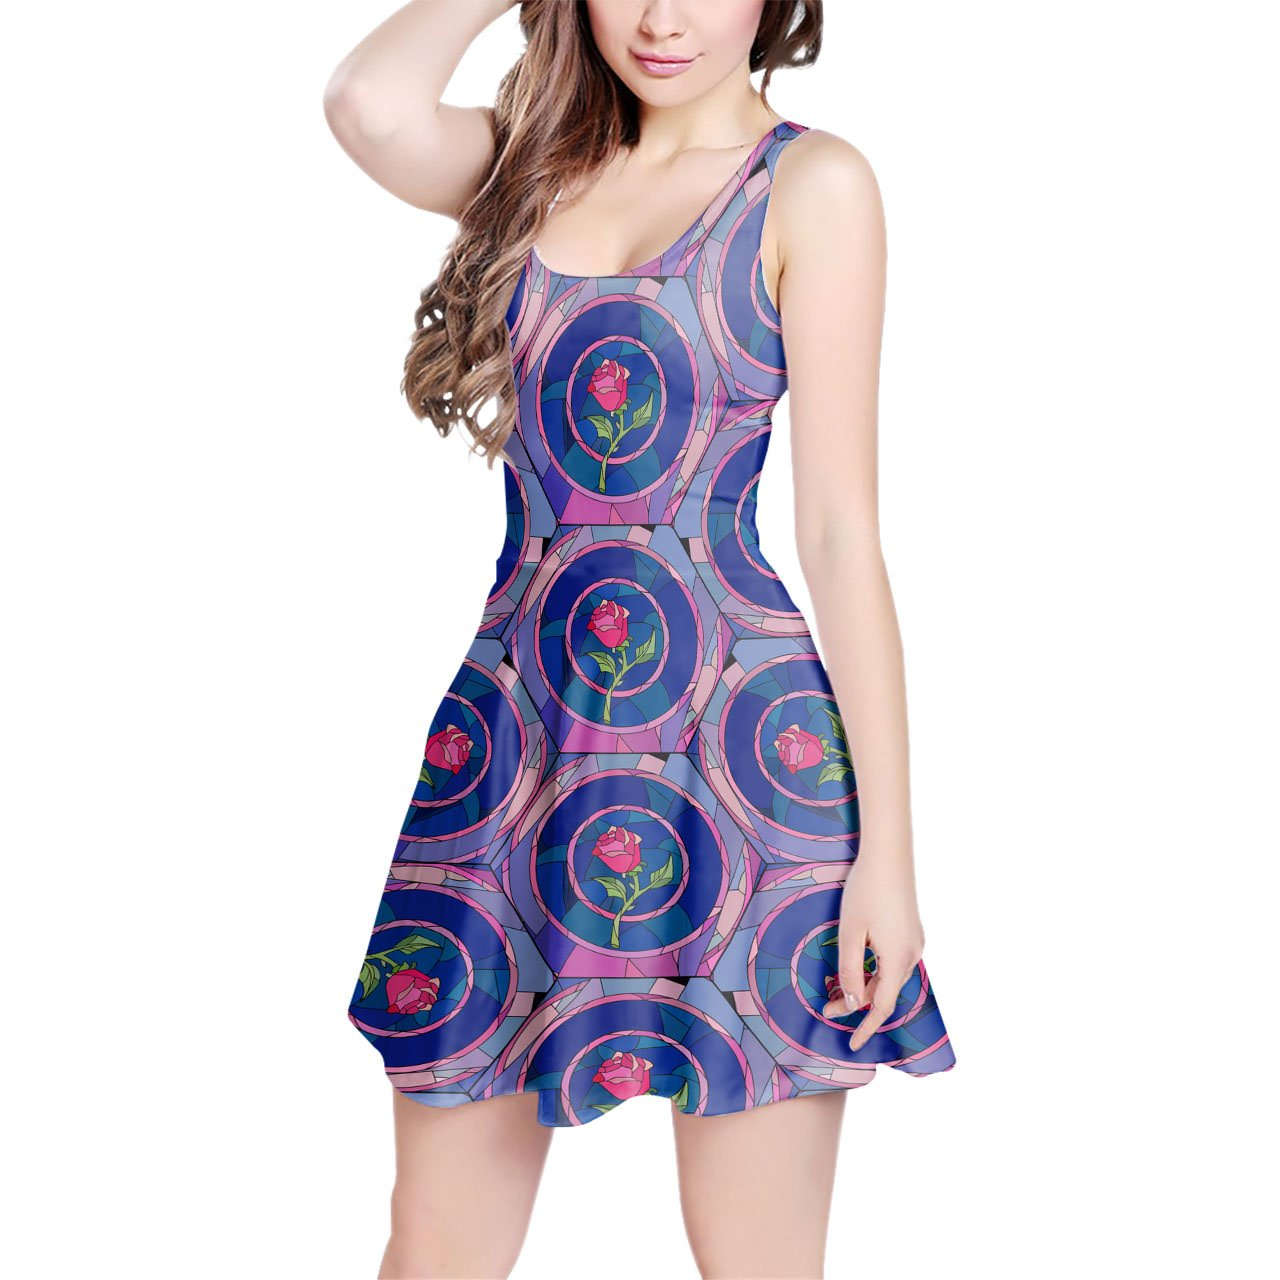 Stained Glass Rose Disney Inspired Sleeveless Flared Skater Dress